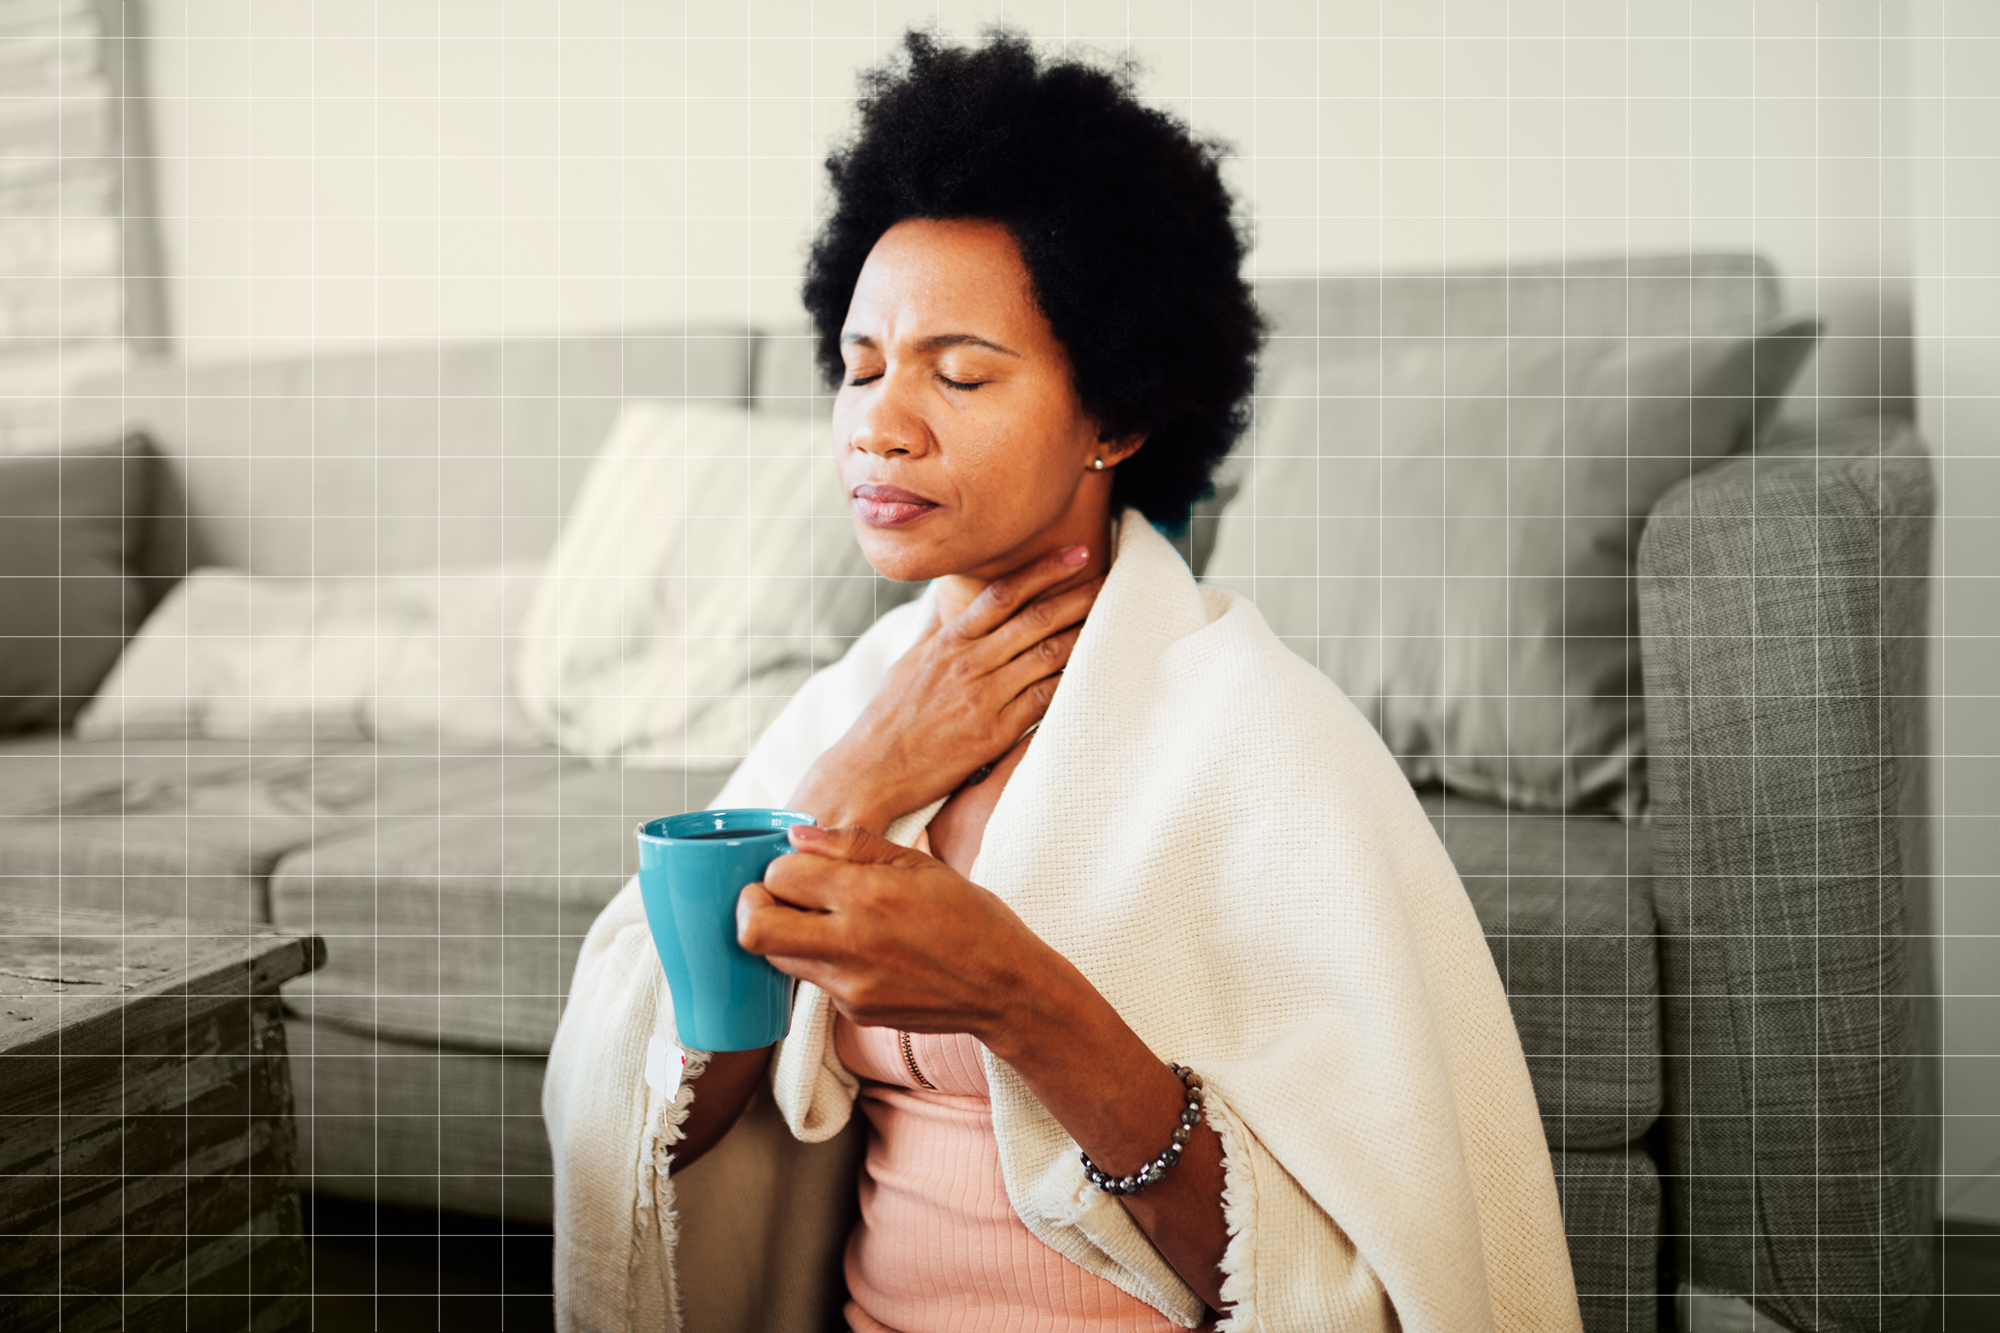 Sick woman with a sore throat staying at home